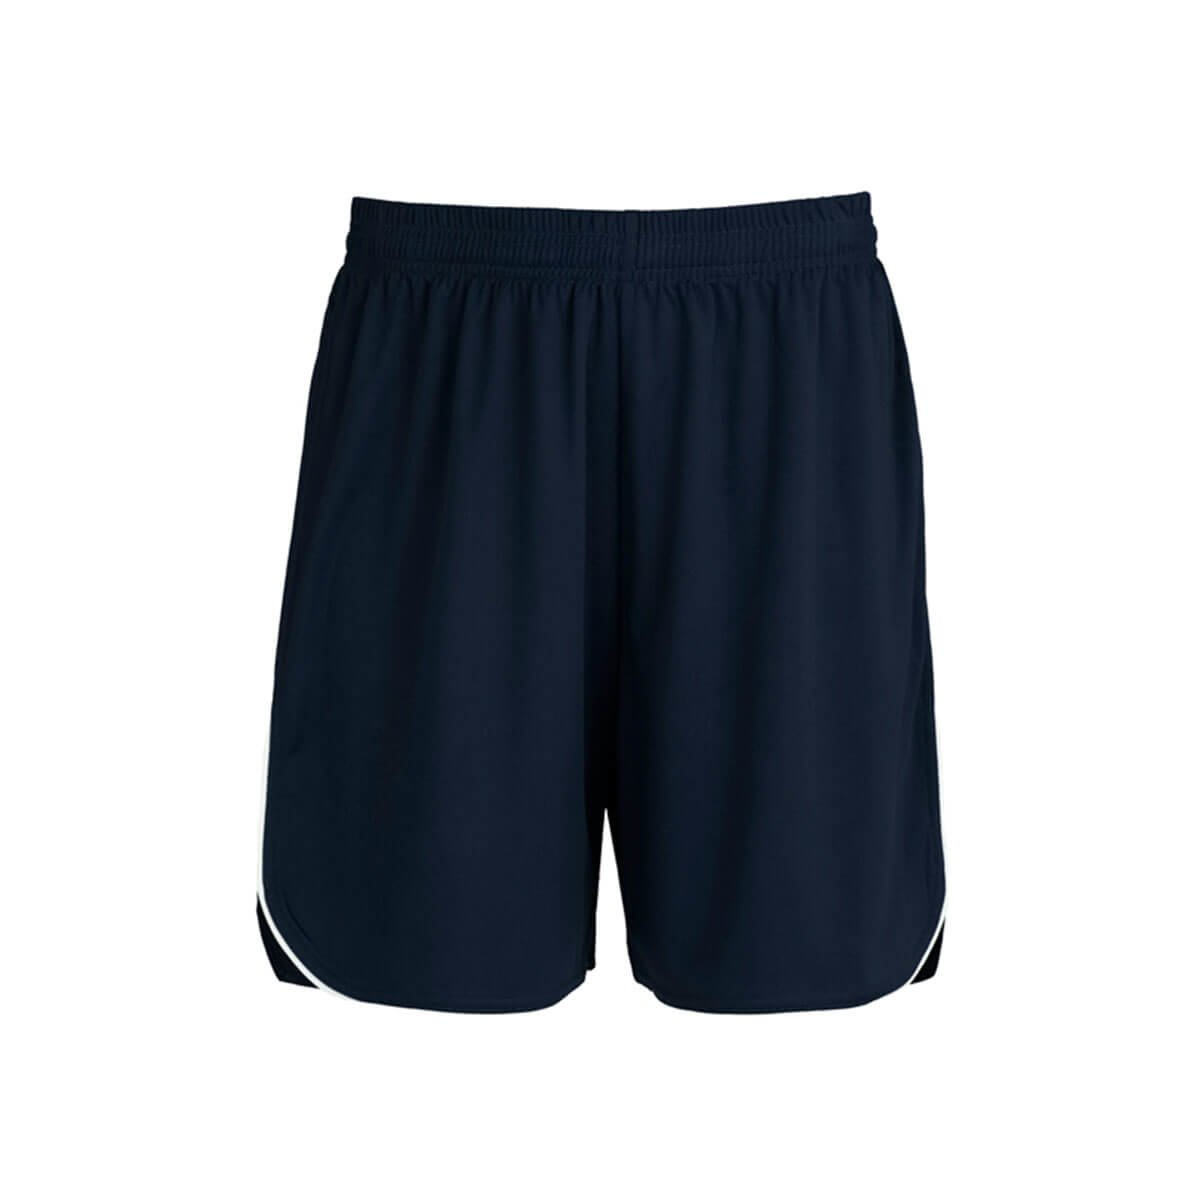 Mens Sonic Shorts-Navy / White